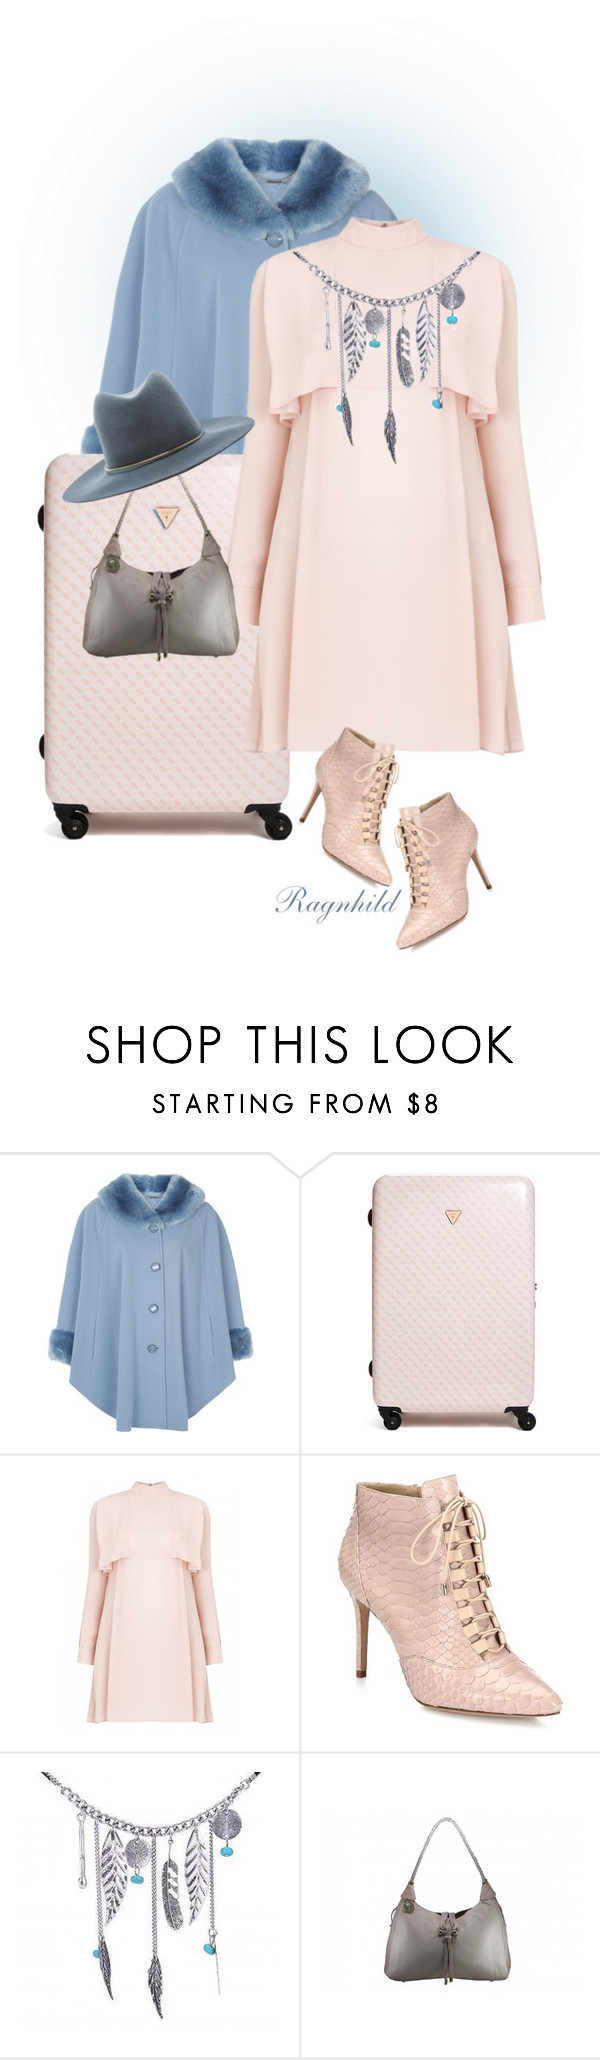 """""""Give me a Break"""" by ragnh-mjos ❤ liked on Polyvore featuring Jacques Vert, GUESS, Alexandre Birman, Janessa Leone, contest, outfit and pantone2016"""